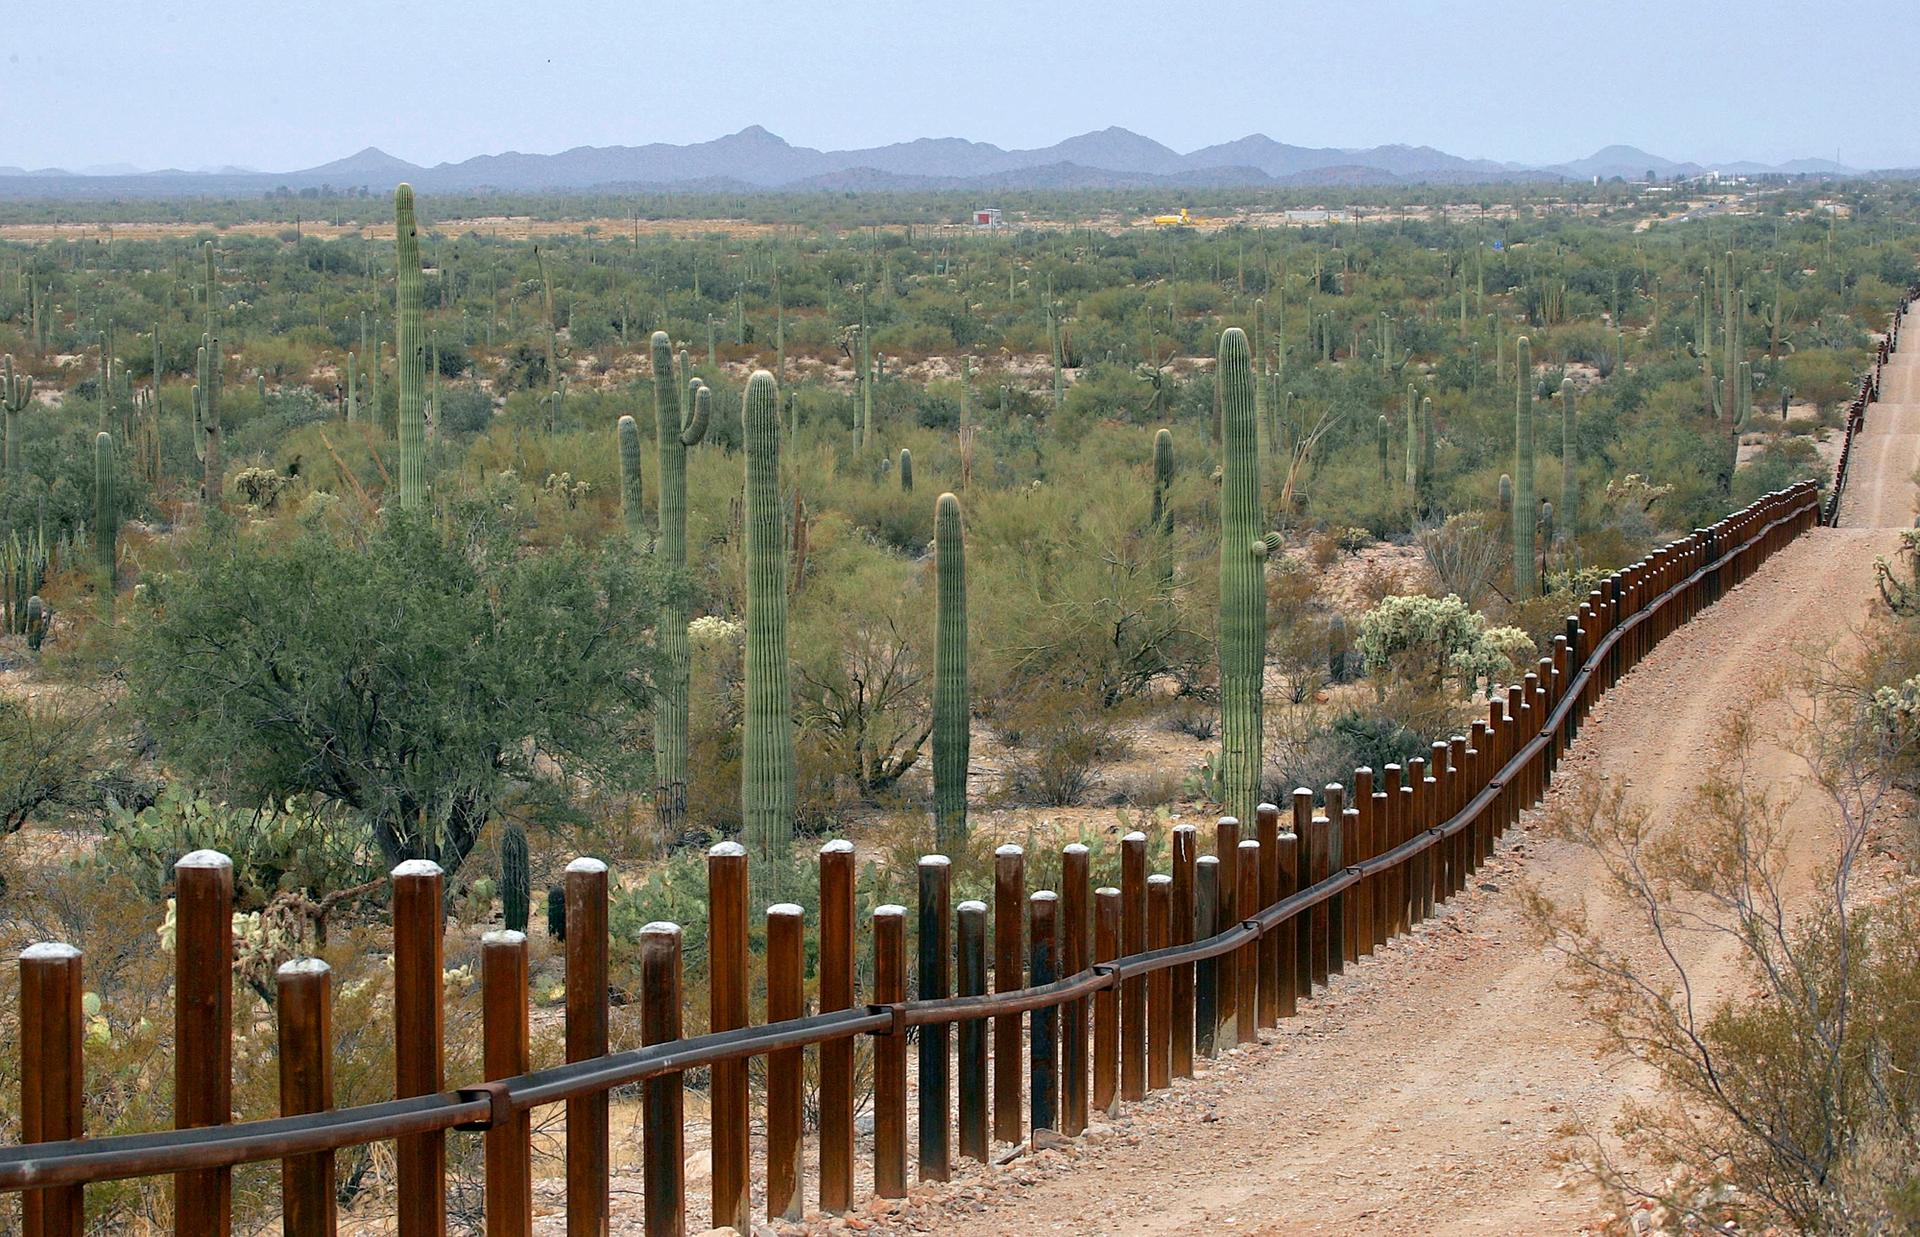 A highly detailed National Park Service report describes the potential impact of border barrier construction at Organ Pipe Cactus National Monument, a 517-sq.-mile park and Unesco biosphere reserve in Arizona AP Photo/Matt York, File